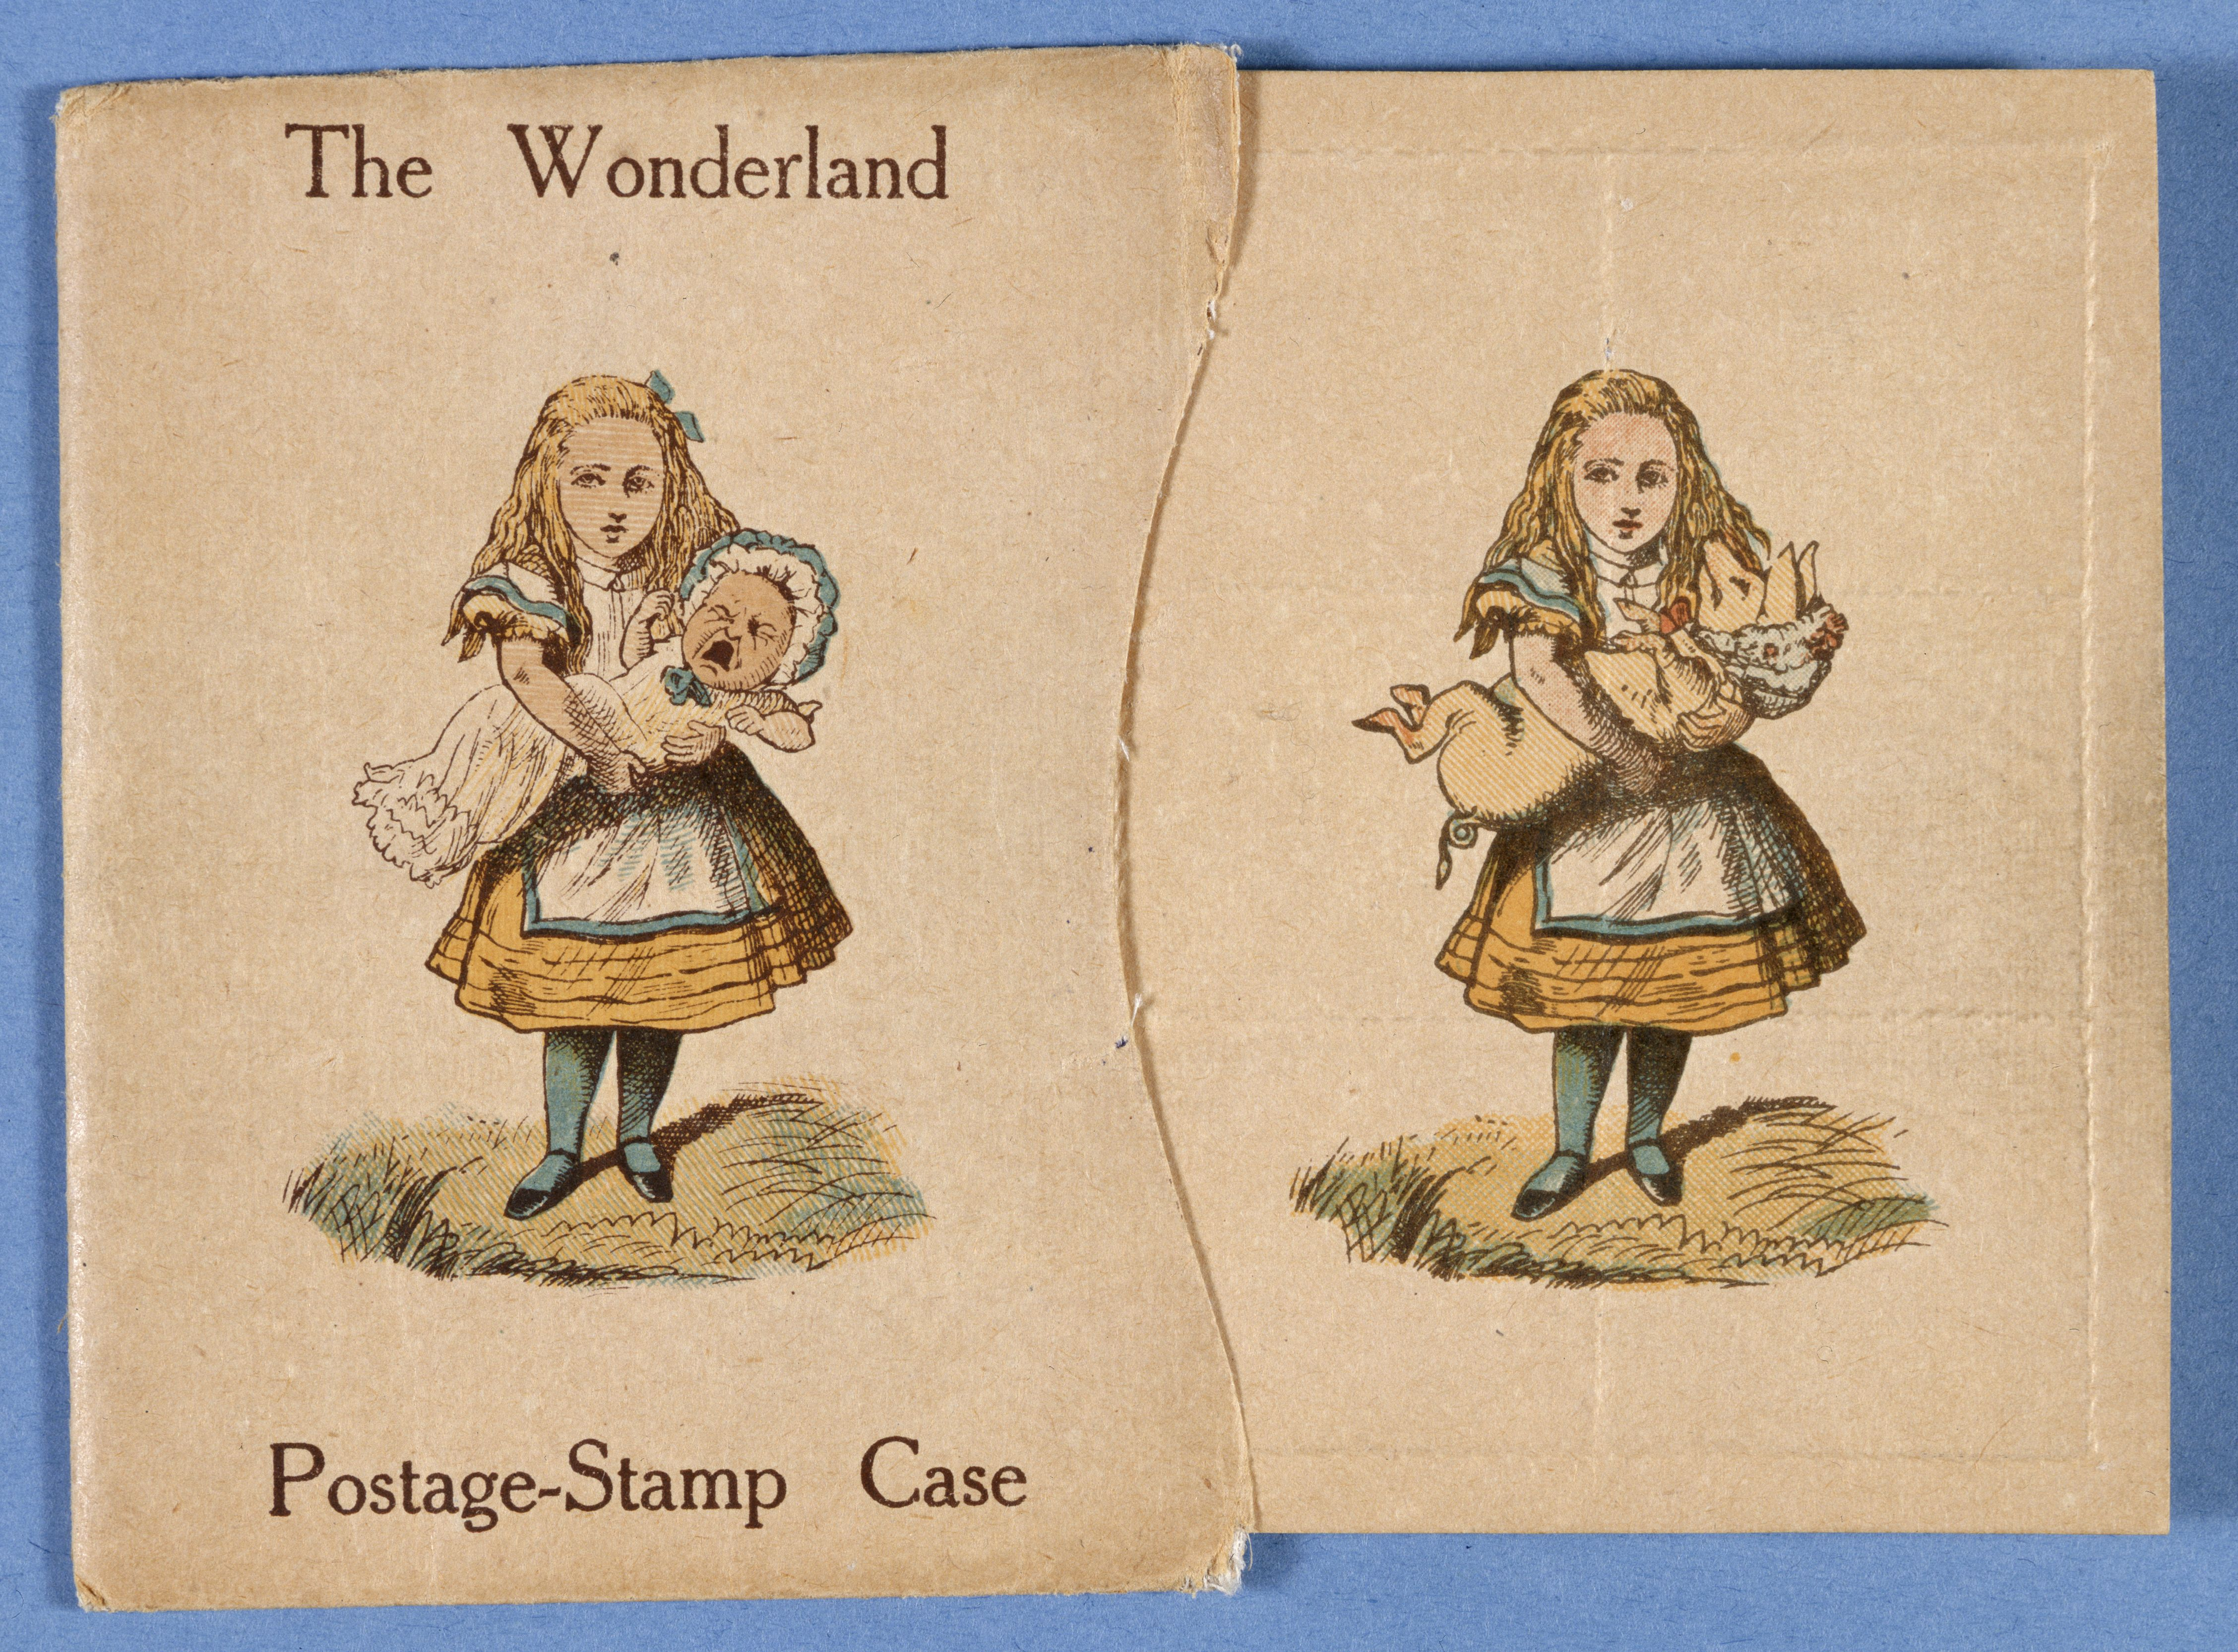 Printed illustration of Alice in yellow dress and blue stockings holding a baby, on the cover of 'The Wonderland Postage-Stamp Case'; insert shows printed illustration of Alice holding a pig